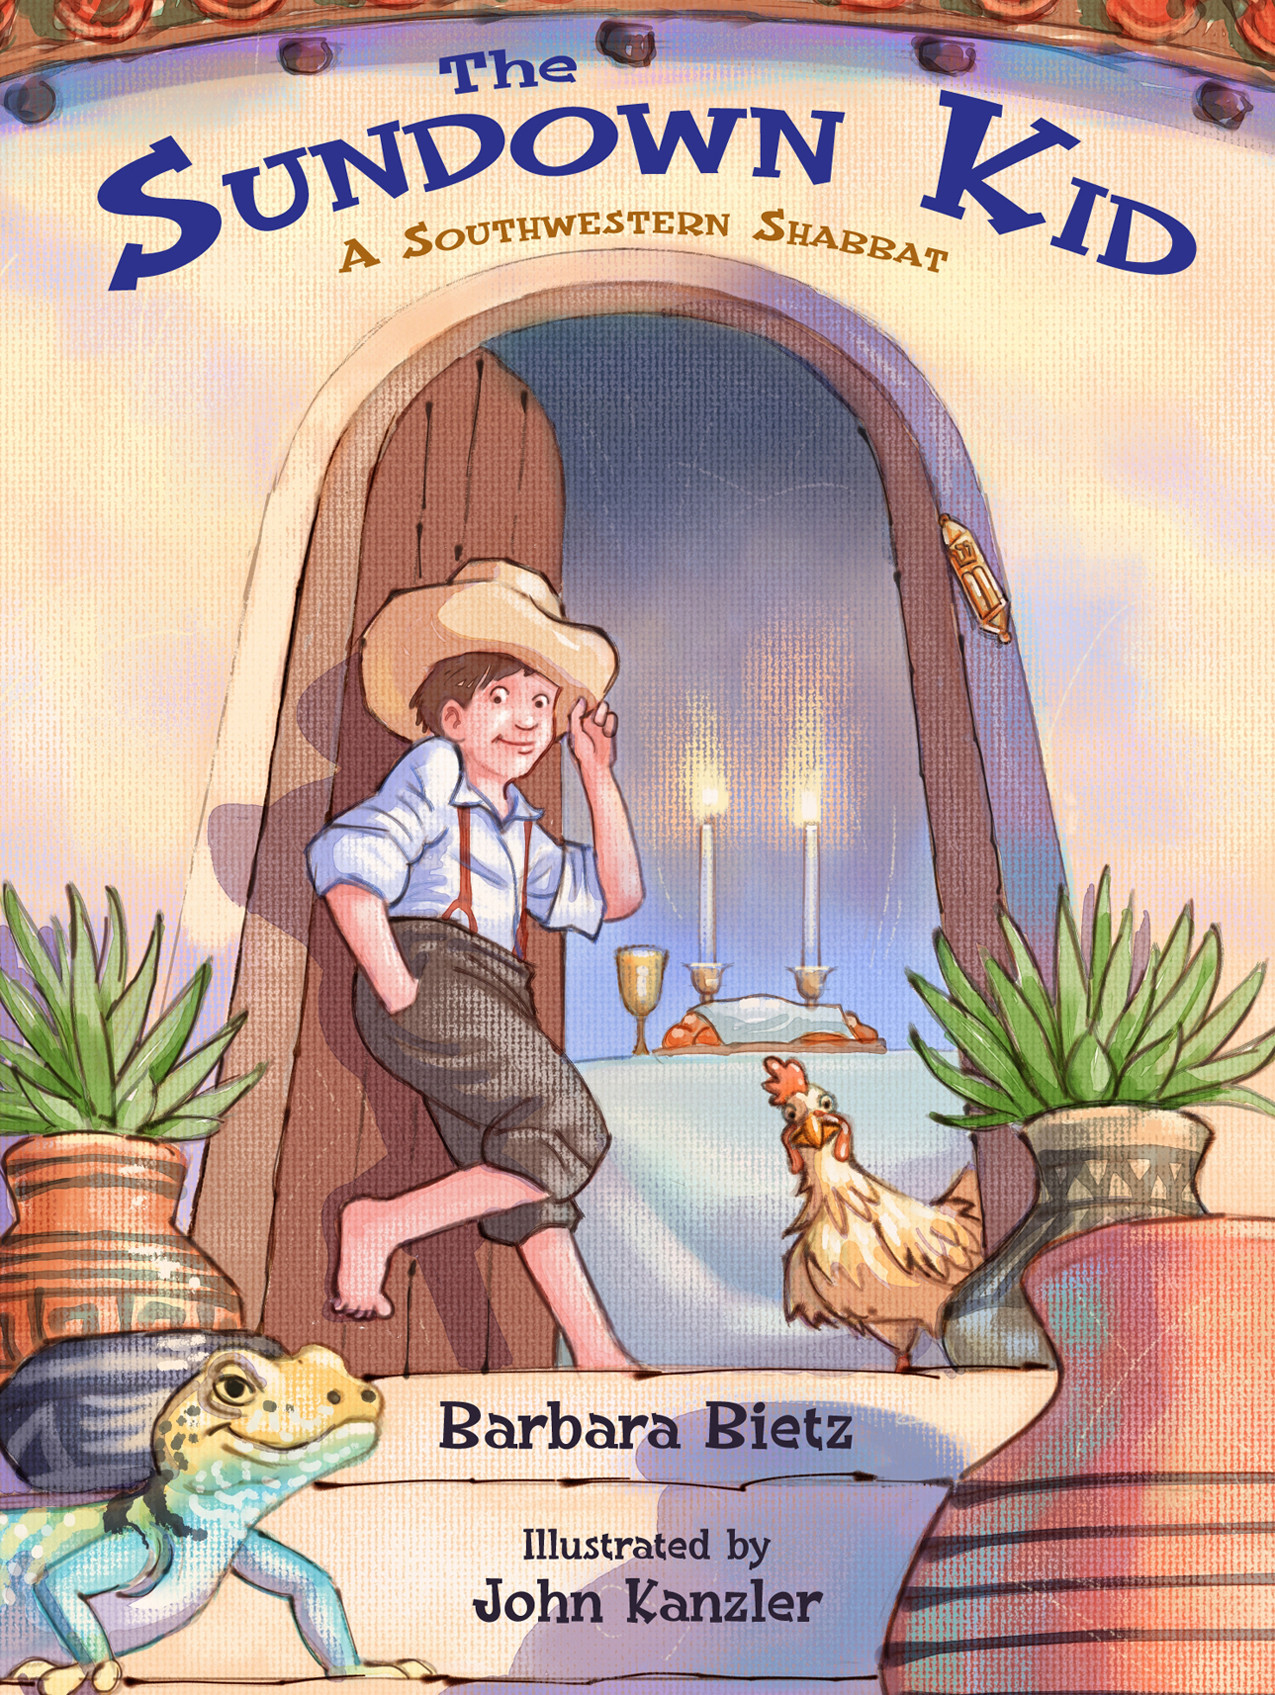 The Sundown Kid by Barbara Bietz